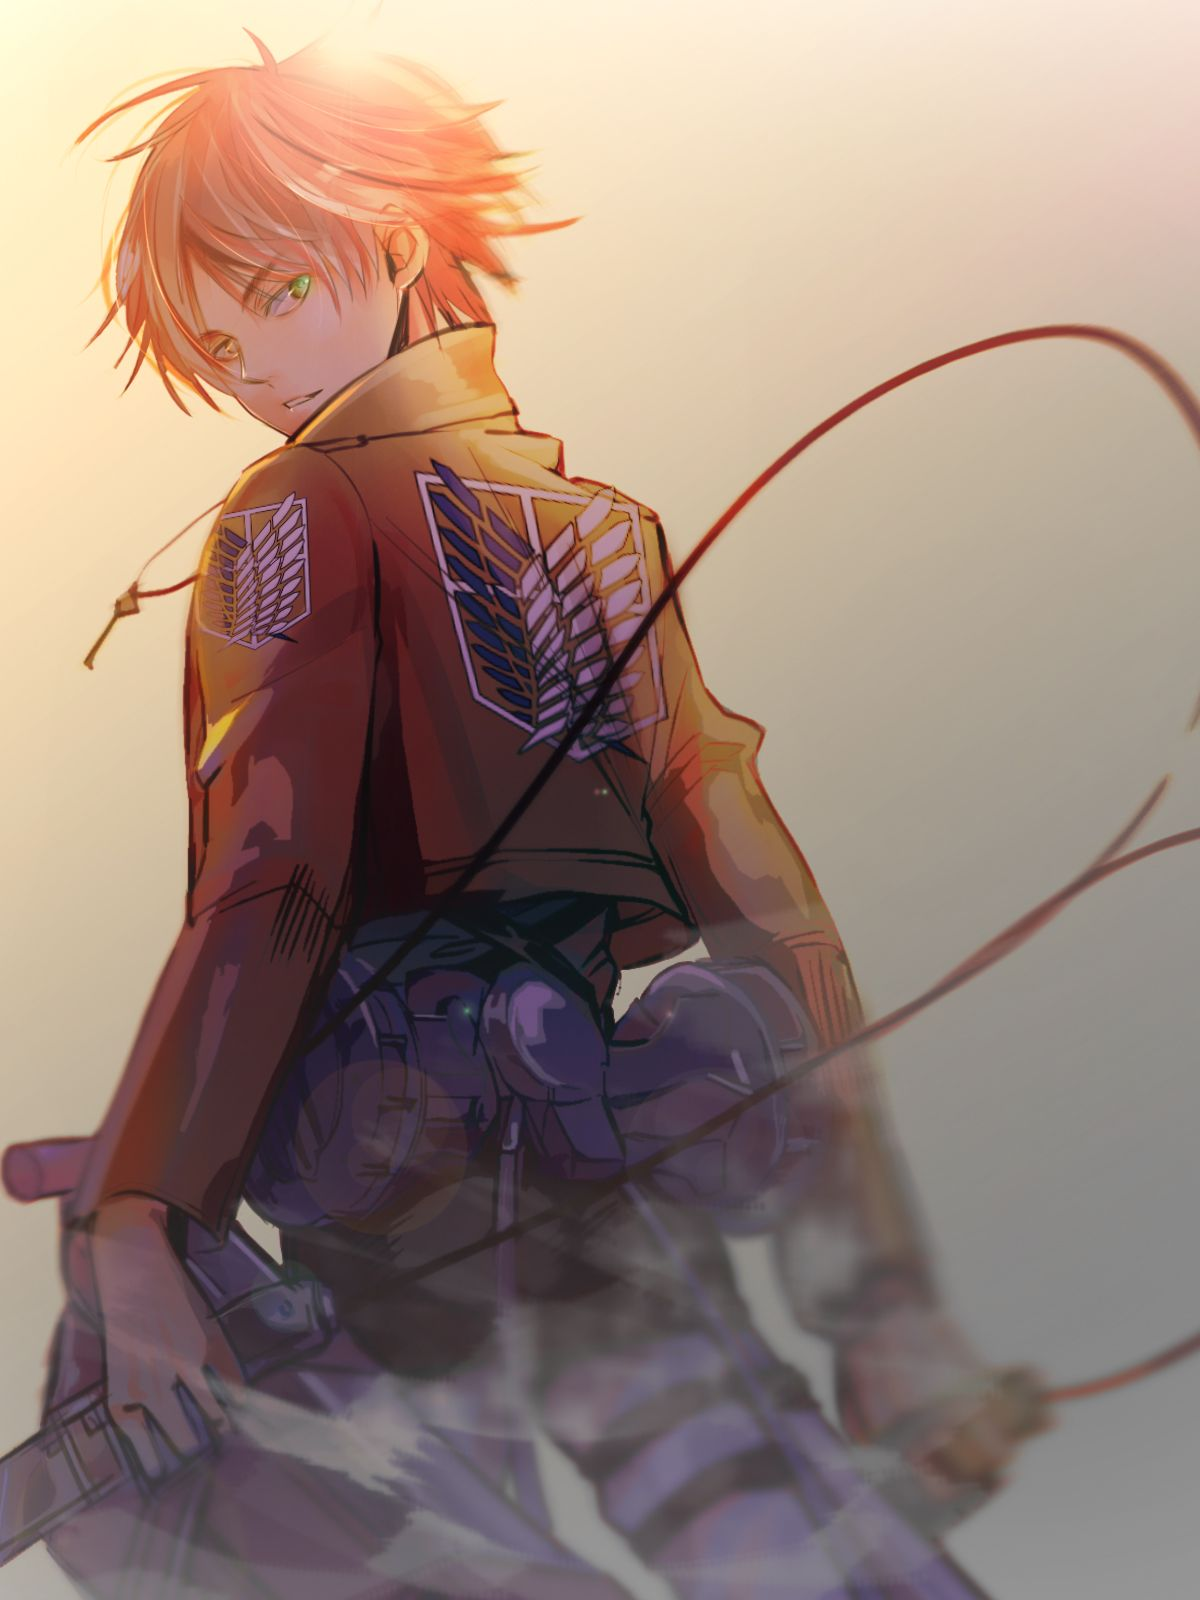 Pinterest in 2020 Anime images, Anime, Attack on titan